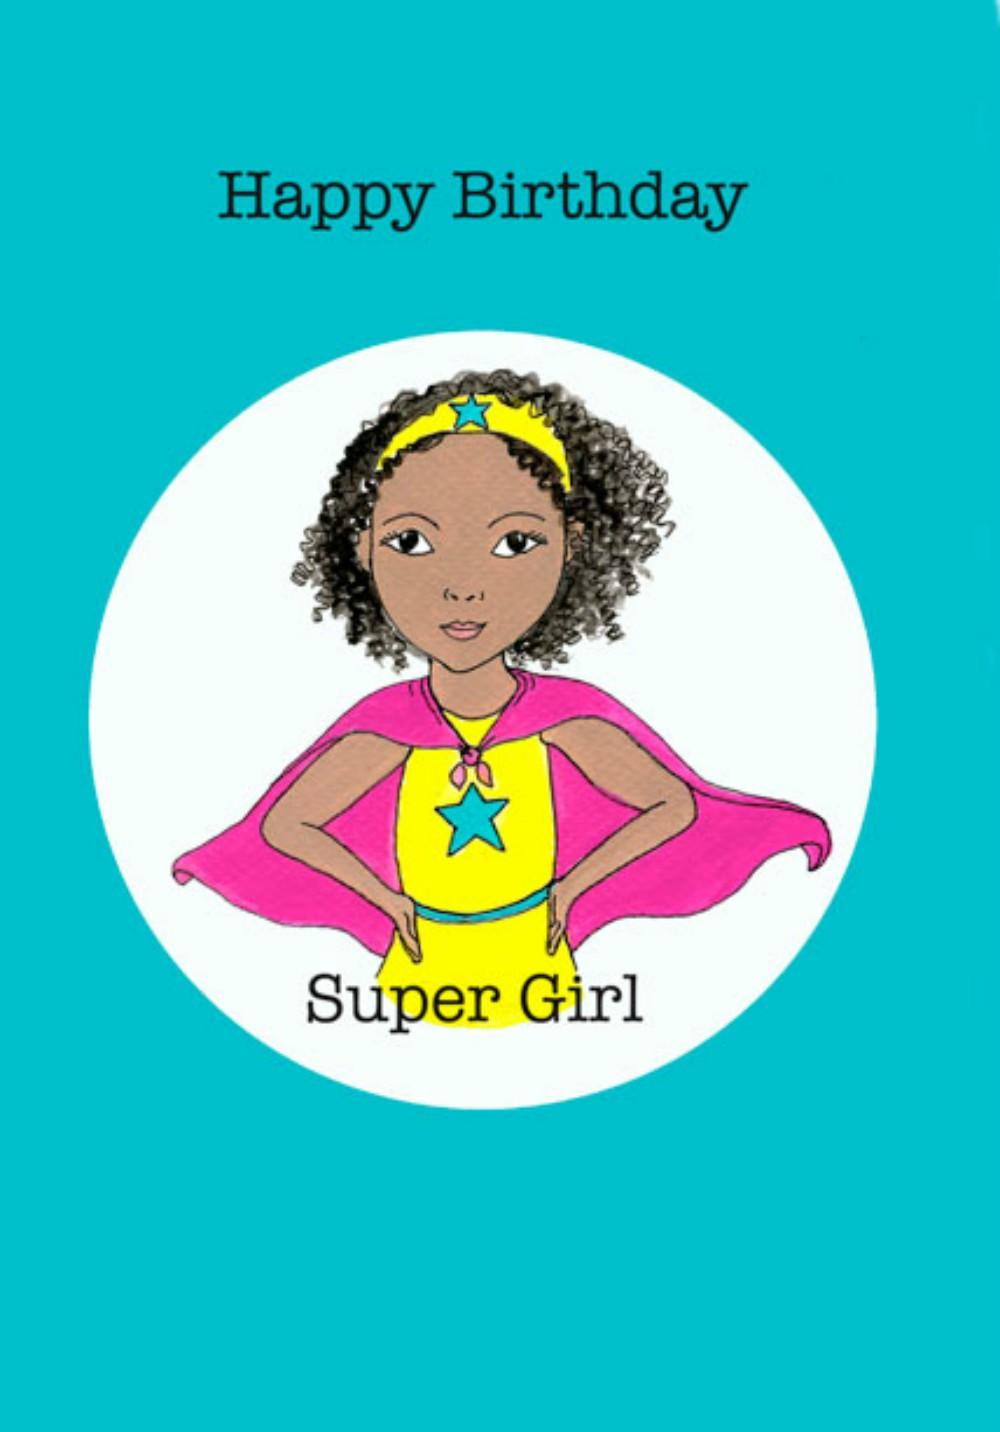 black girl super hero card